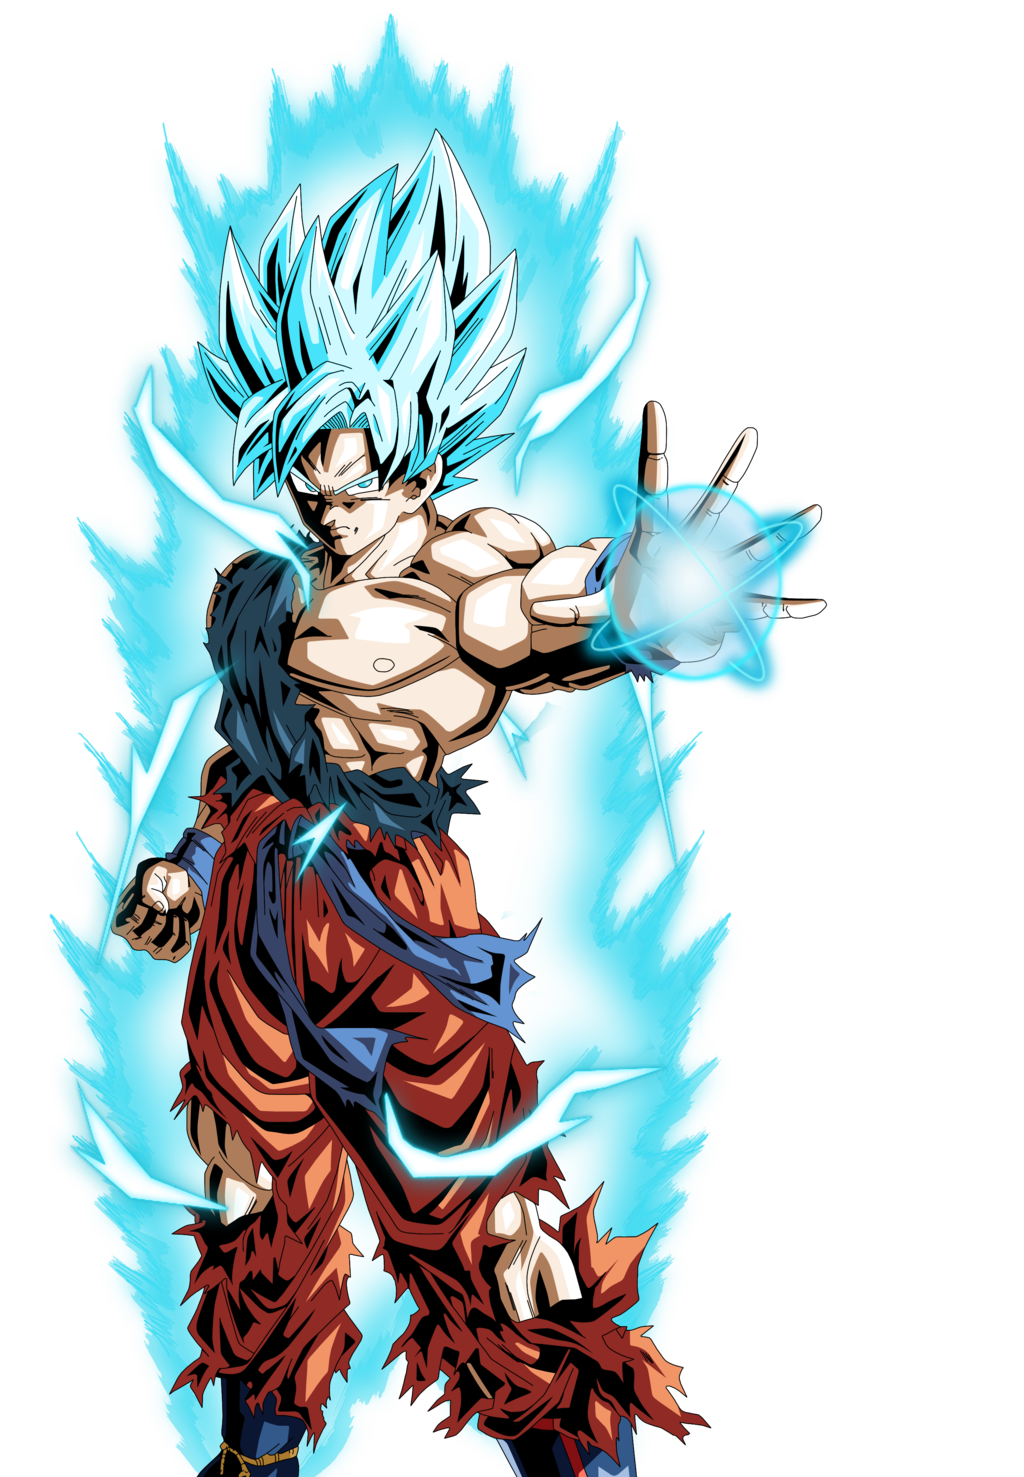 Super saiyan god wallpaper wallpapersafari - Goku 5 super saiyan ...